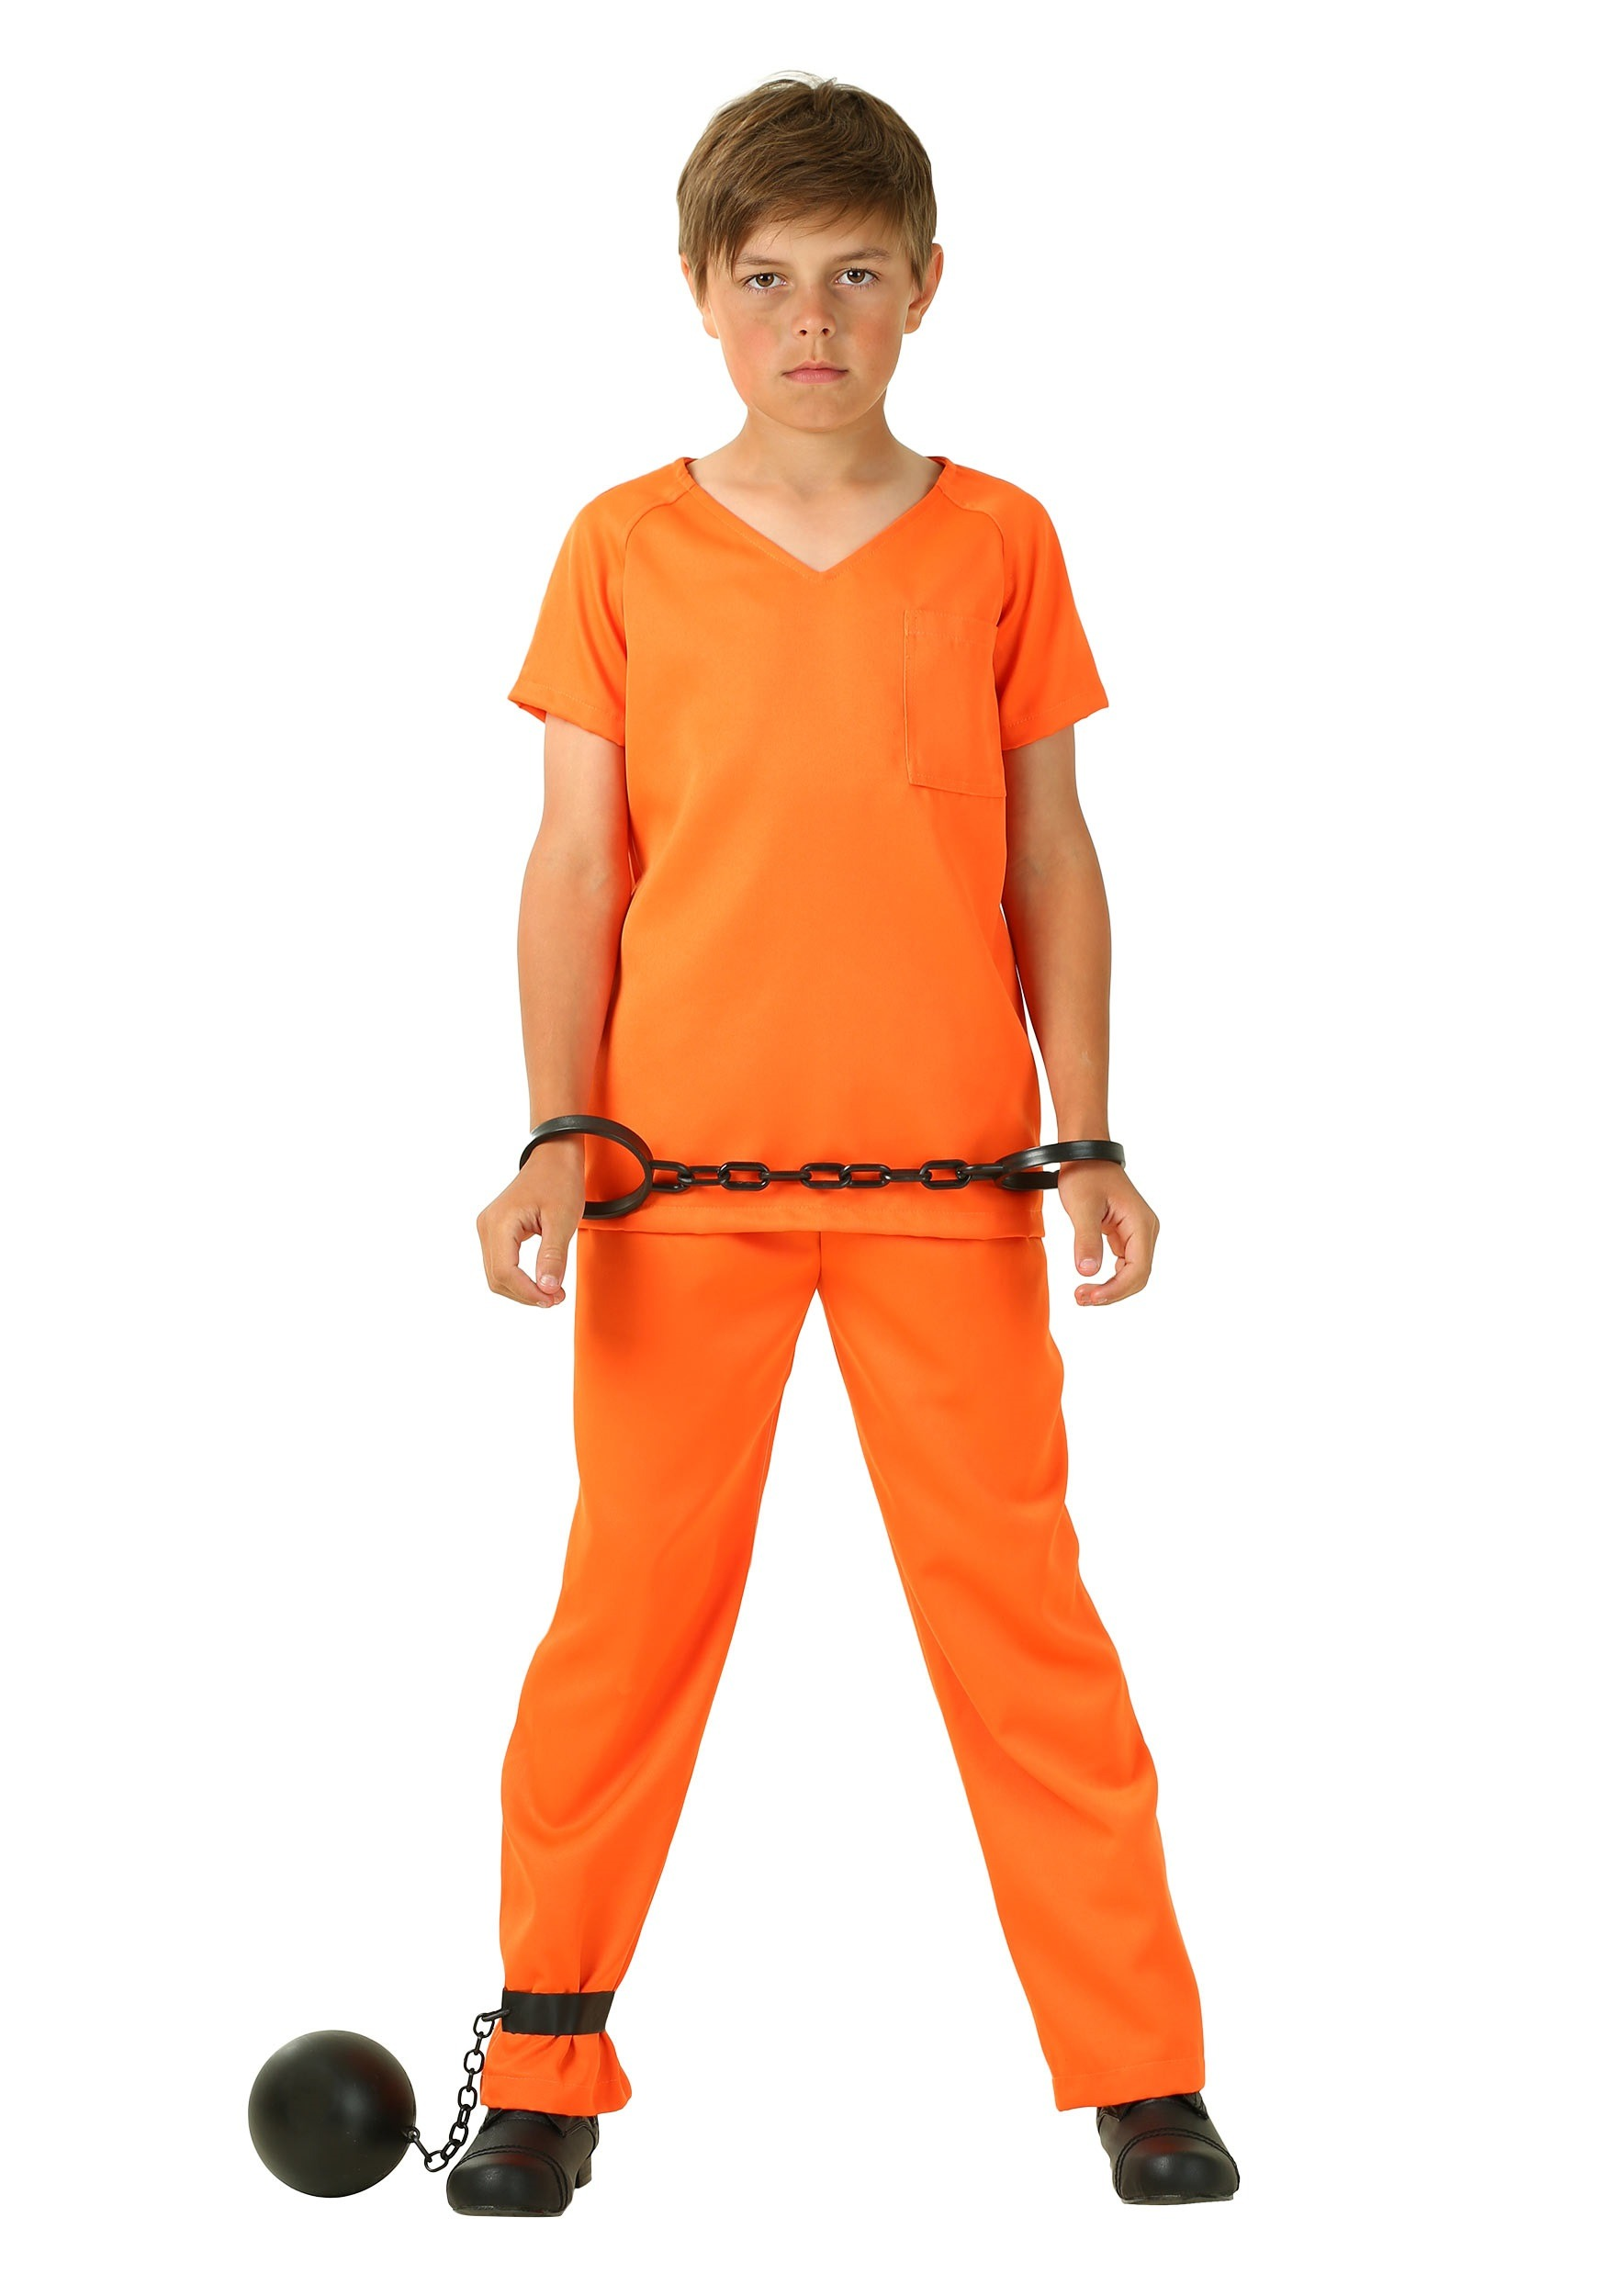 Prisoner sexy inmate costumes halloweencostumes boys orange prisoner costume solutioingenieria Image collections